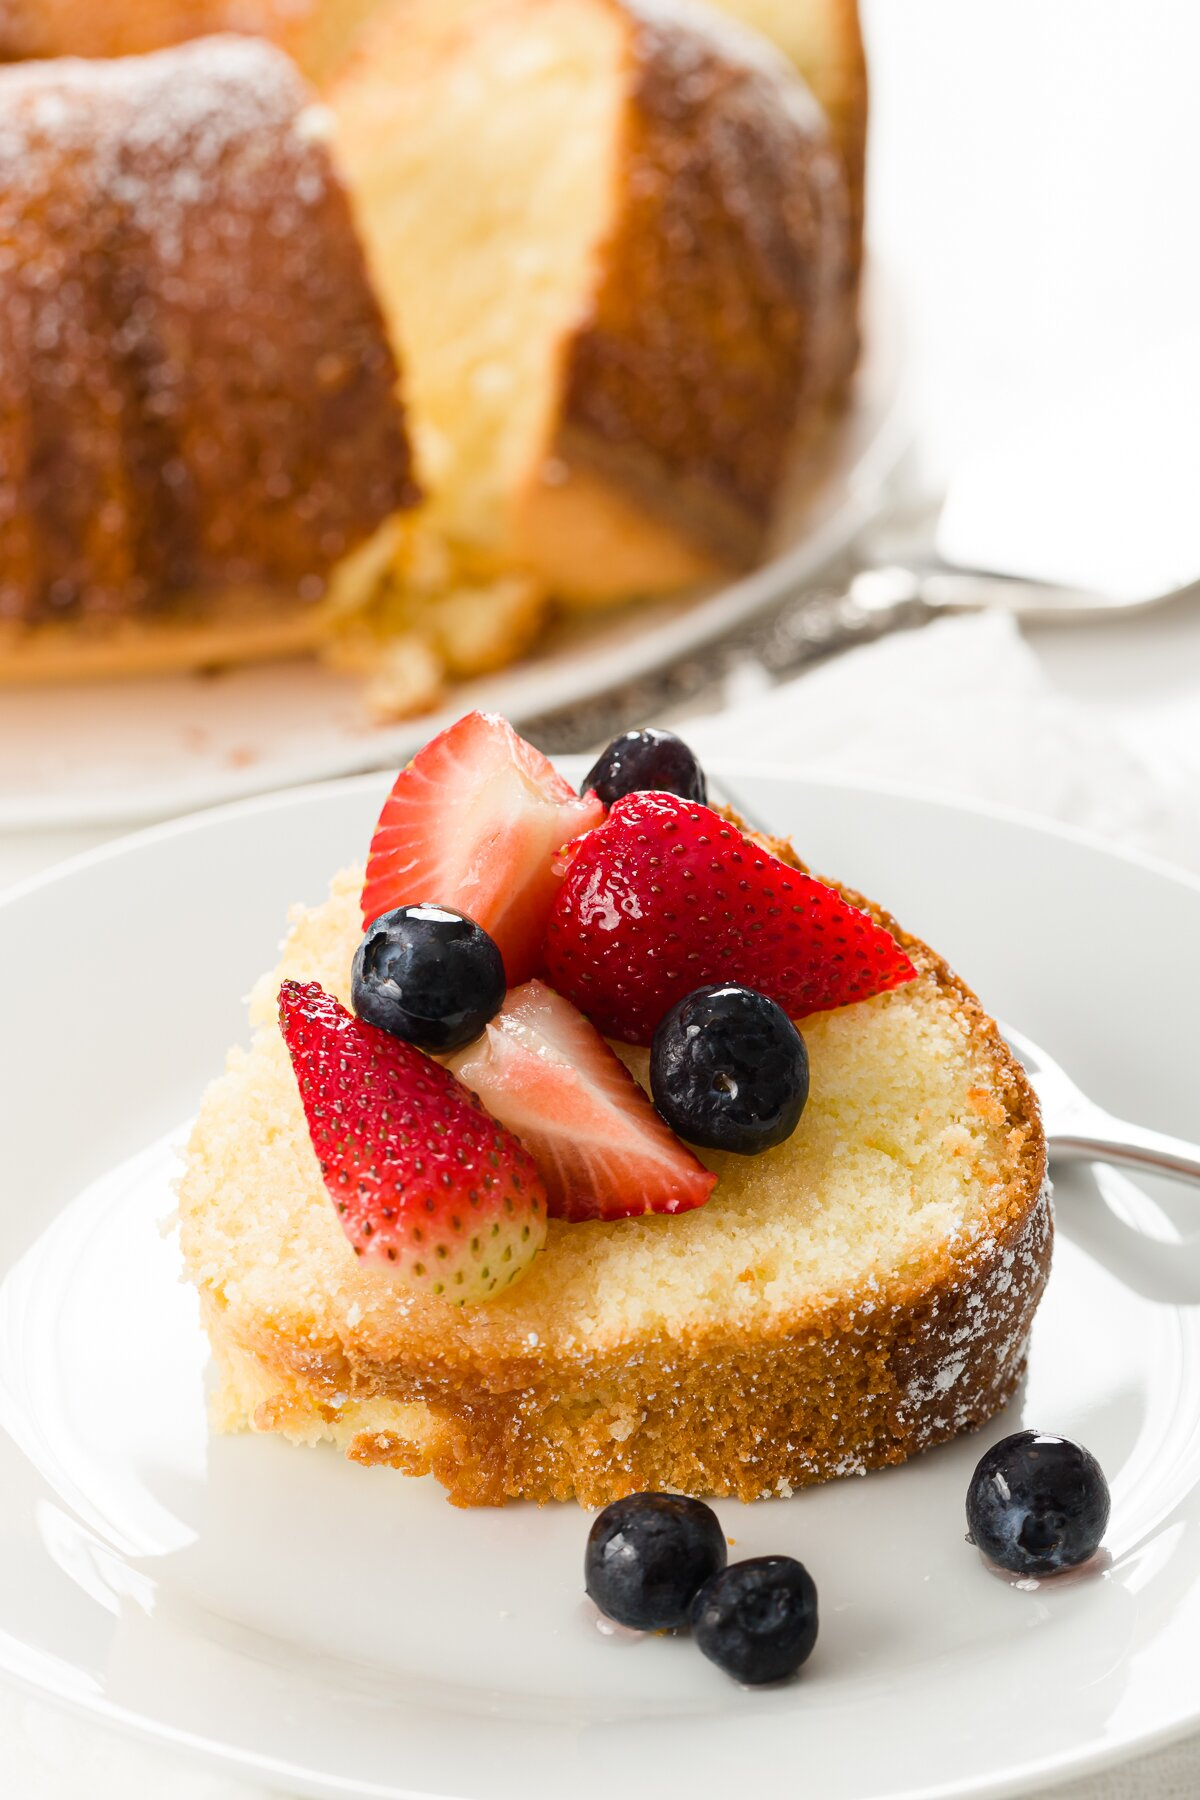 a slice of pound cake covered in berries with the full cake in the background